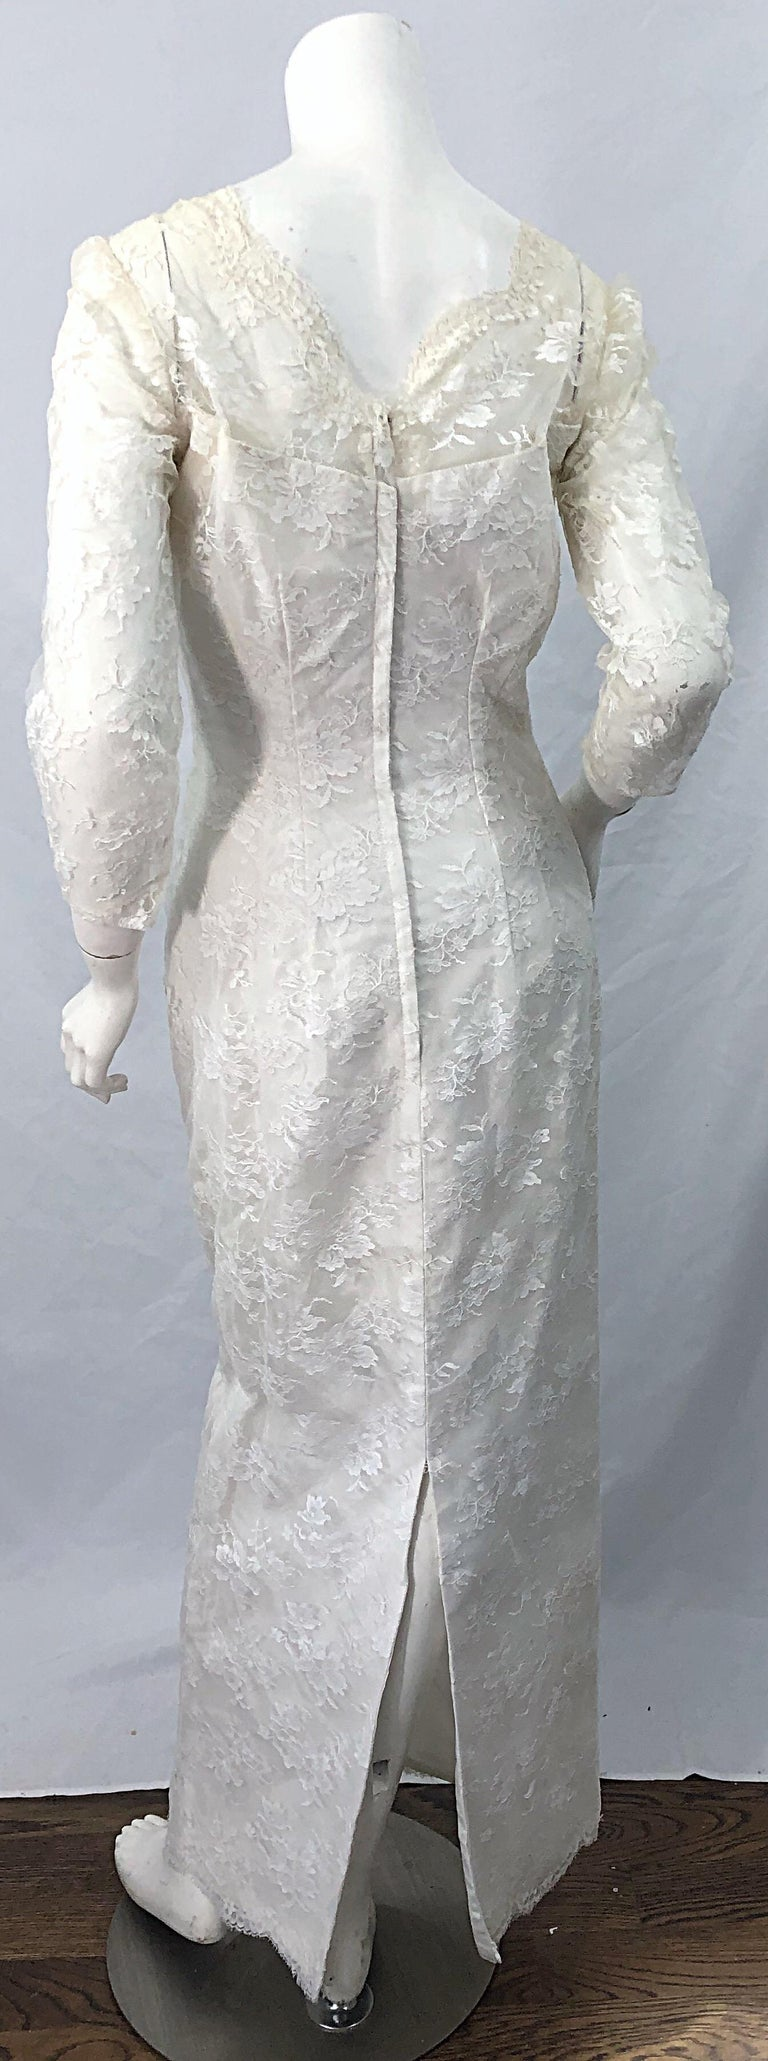 1960s An Original By Constantino White Beaded Couture Vintage Wedding Dress Gown For Sale 4